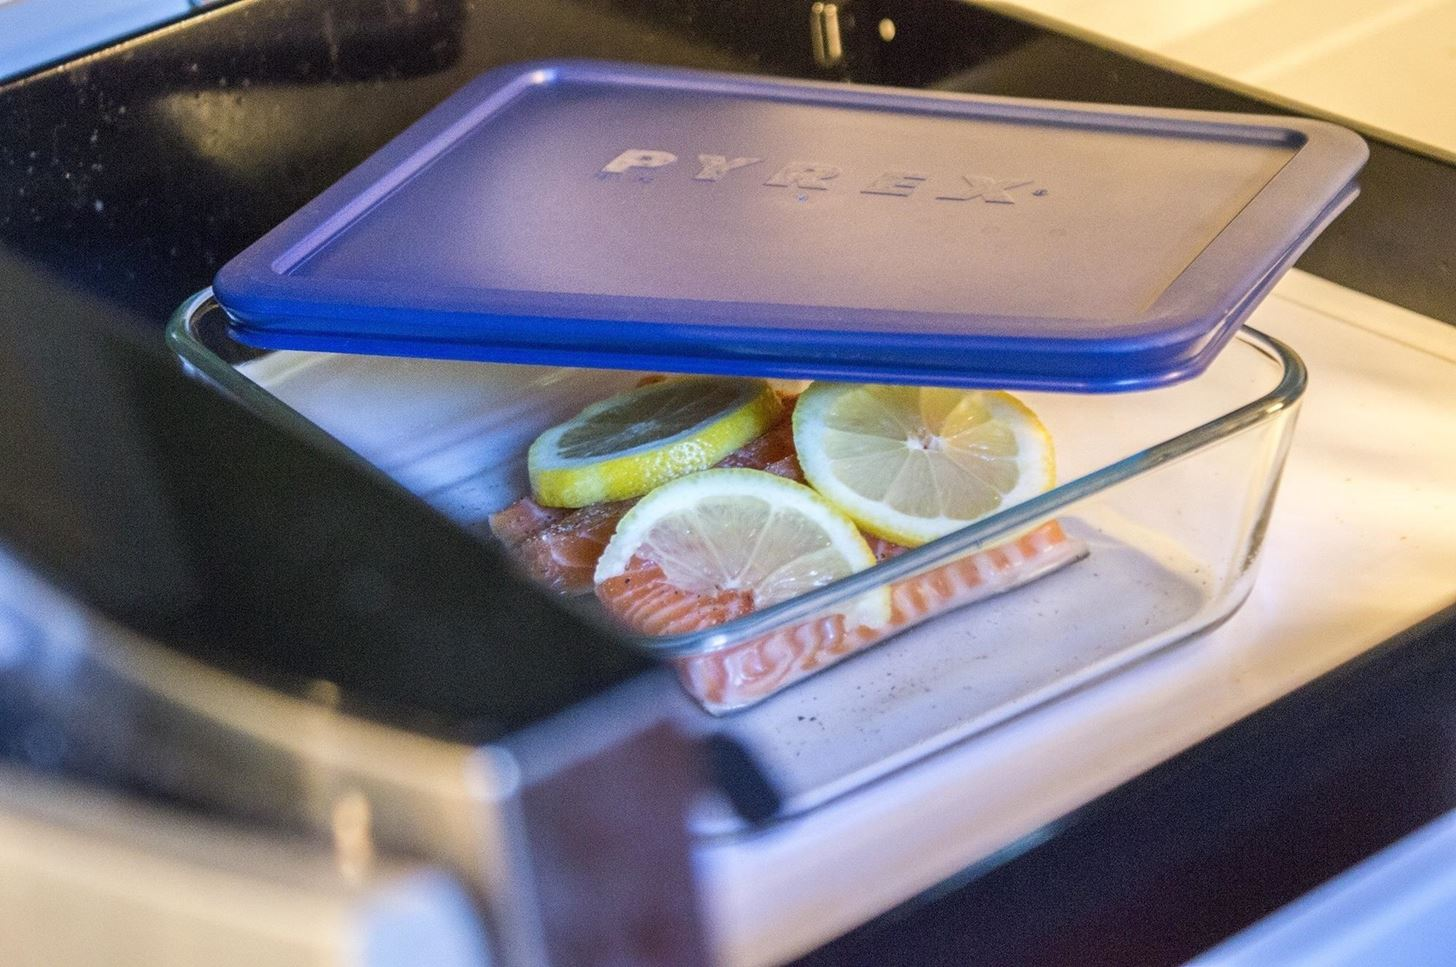 Skip the oven microwave your fish food hacks wonderhowto for Broil fish in oven